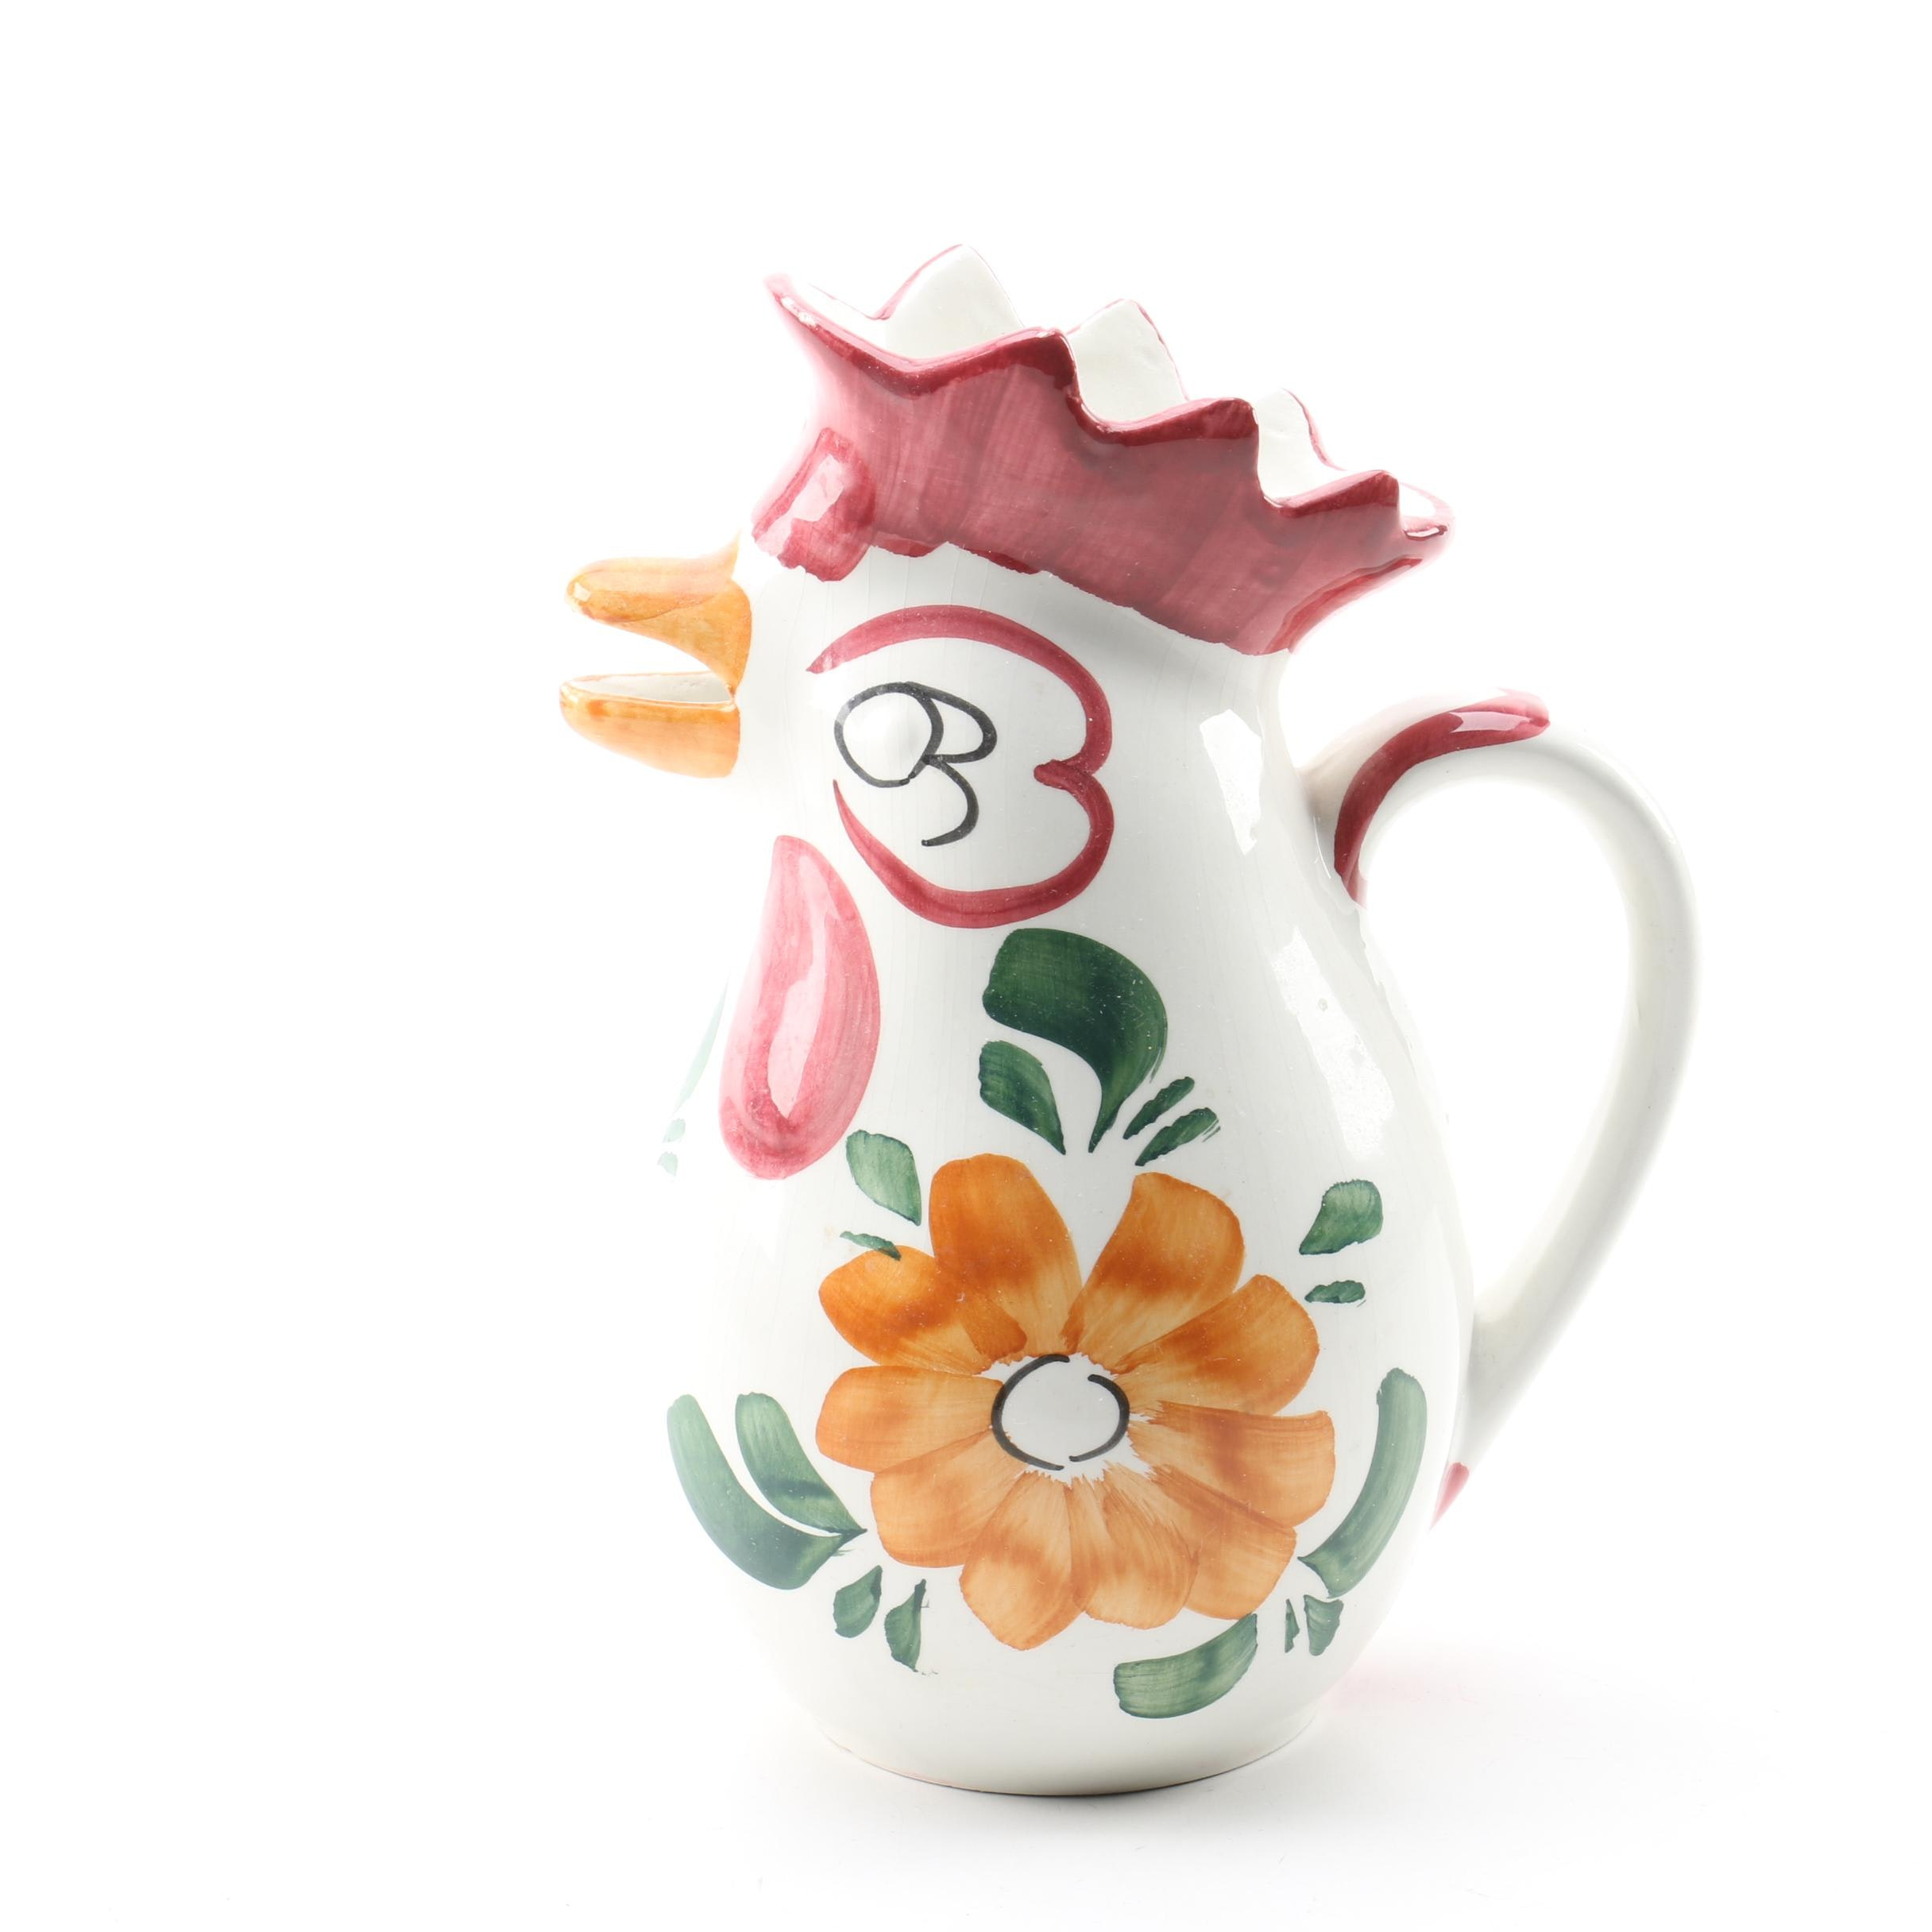 Tarvisium Italian Hand-painted Ceramic Rooster Pitcher